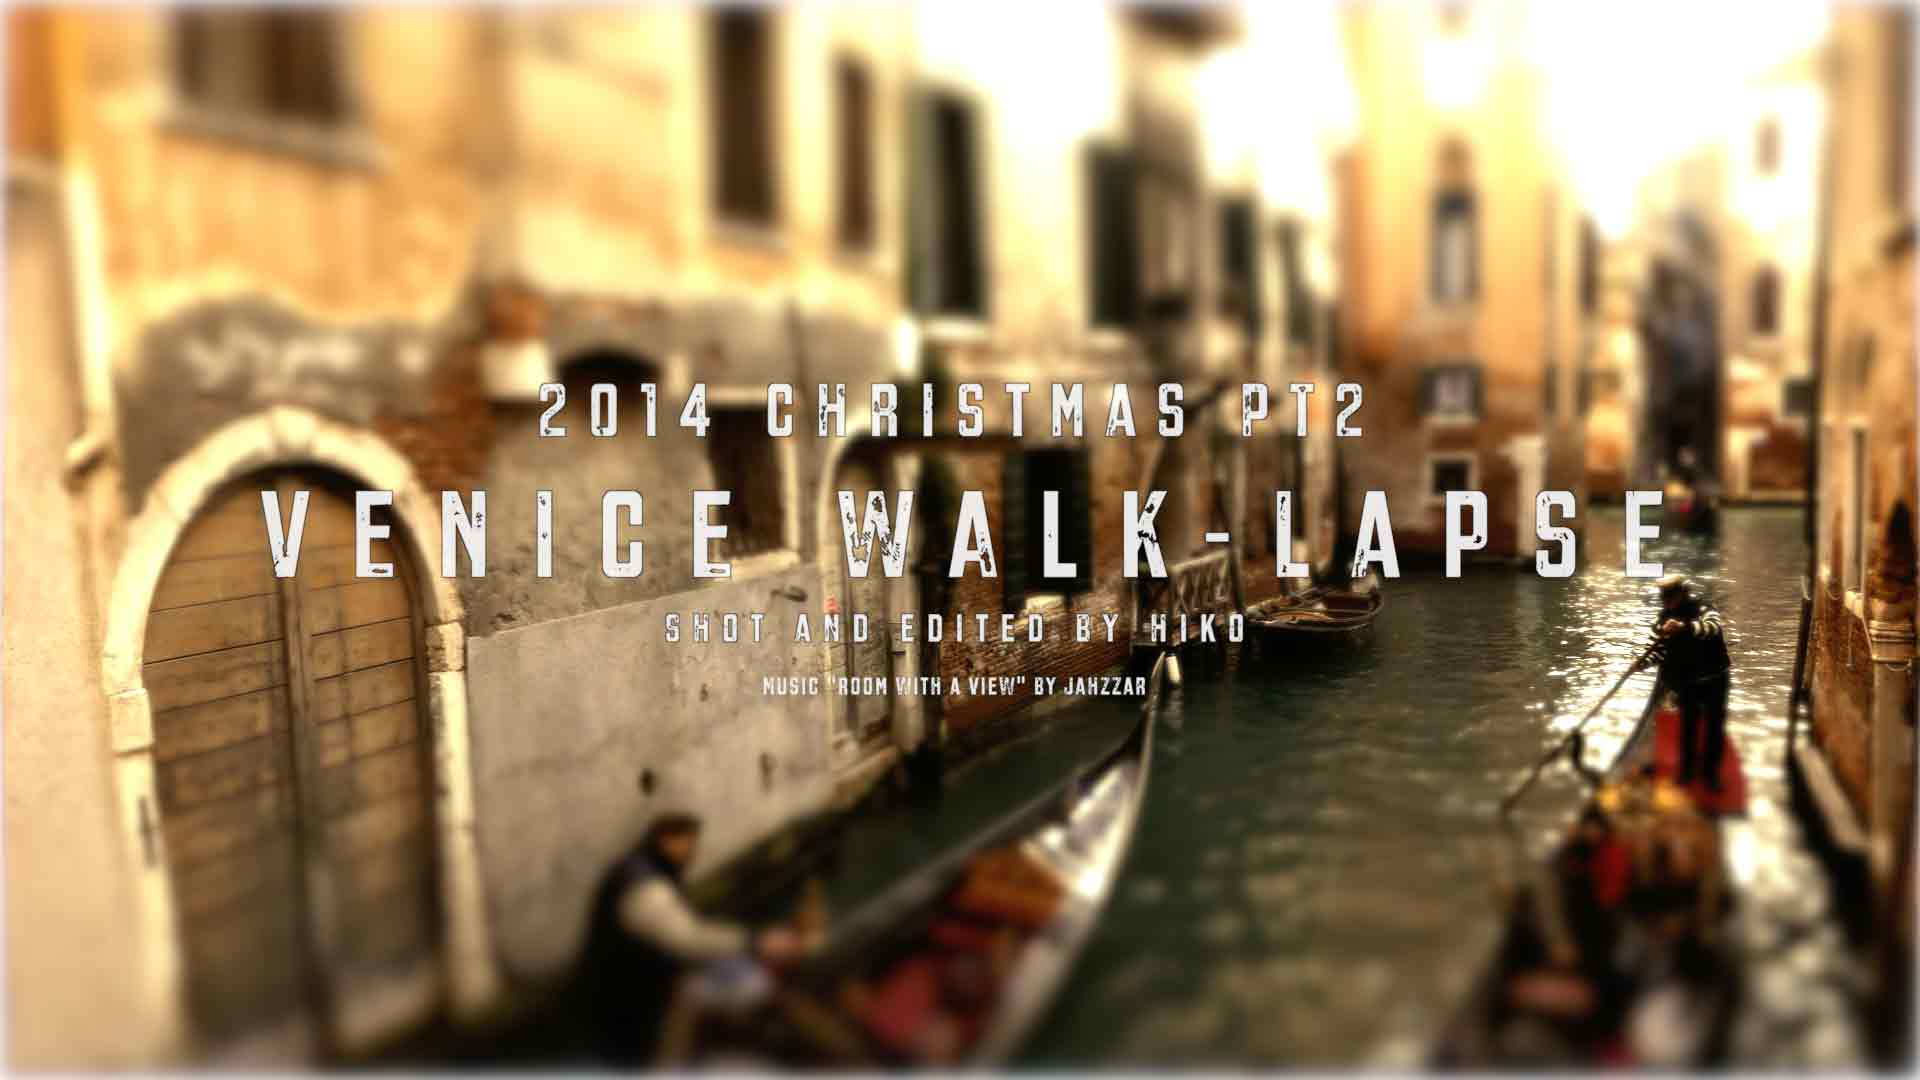 Venice-Walk-lapse-Featured-Image